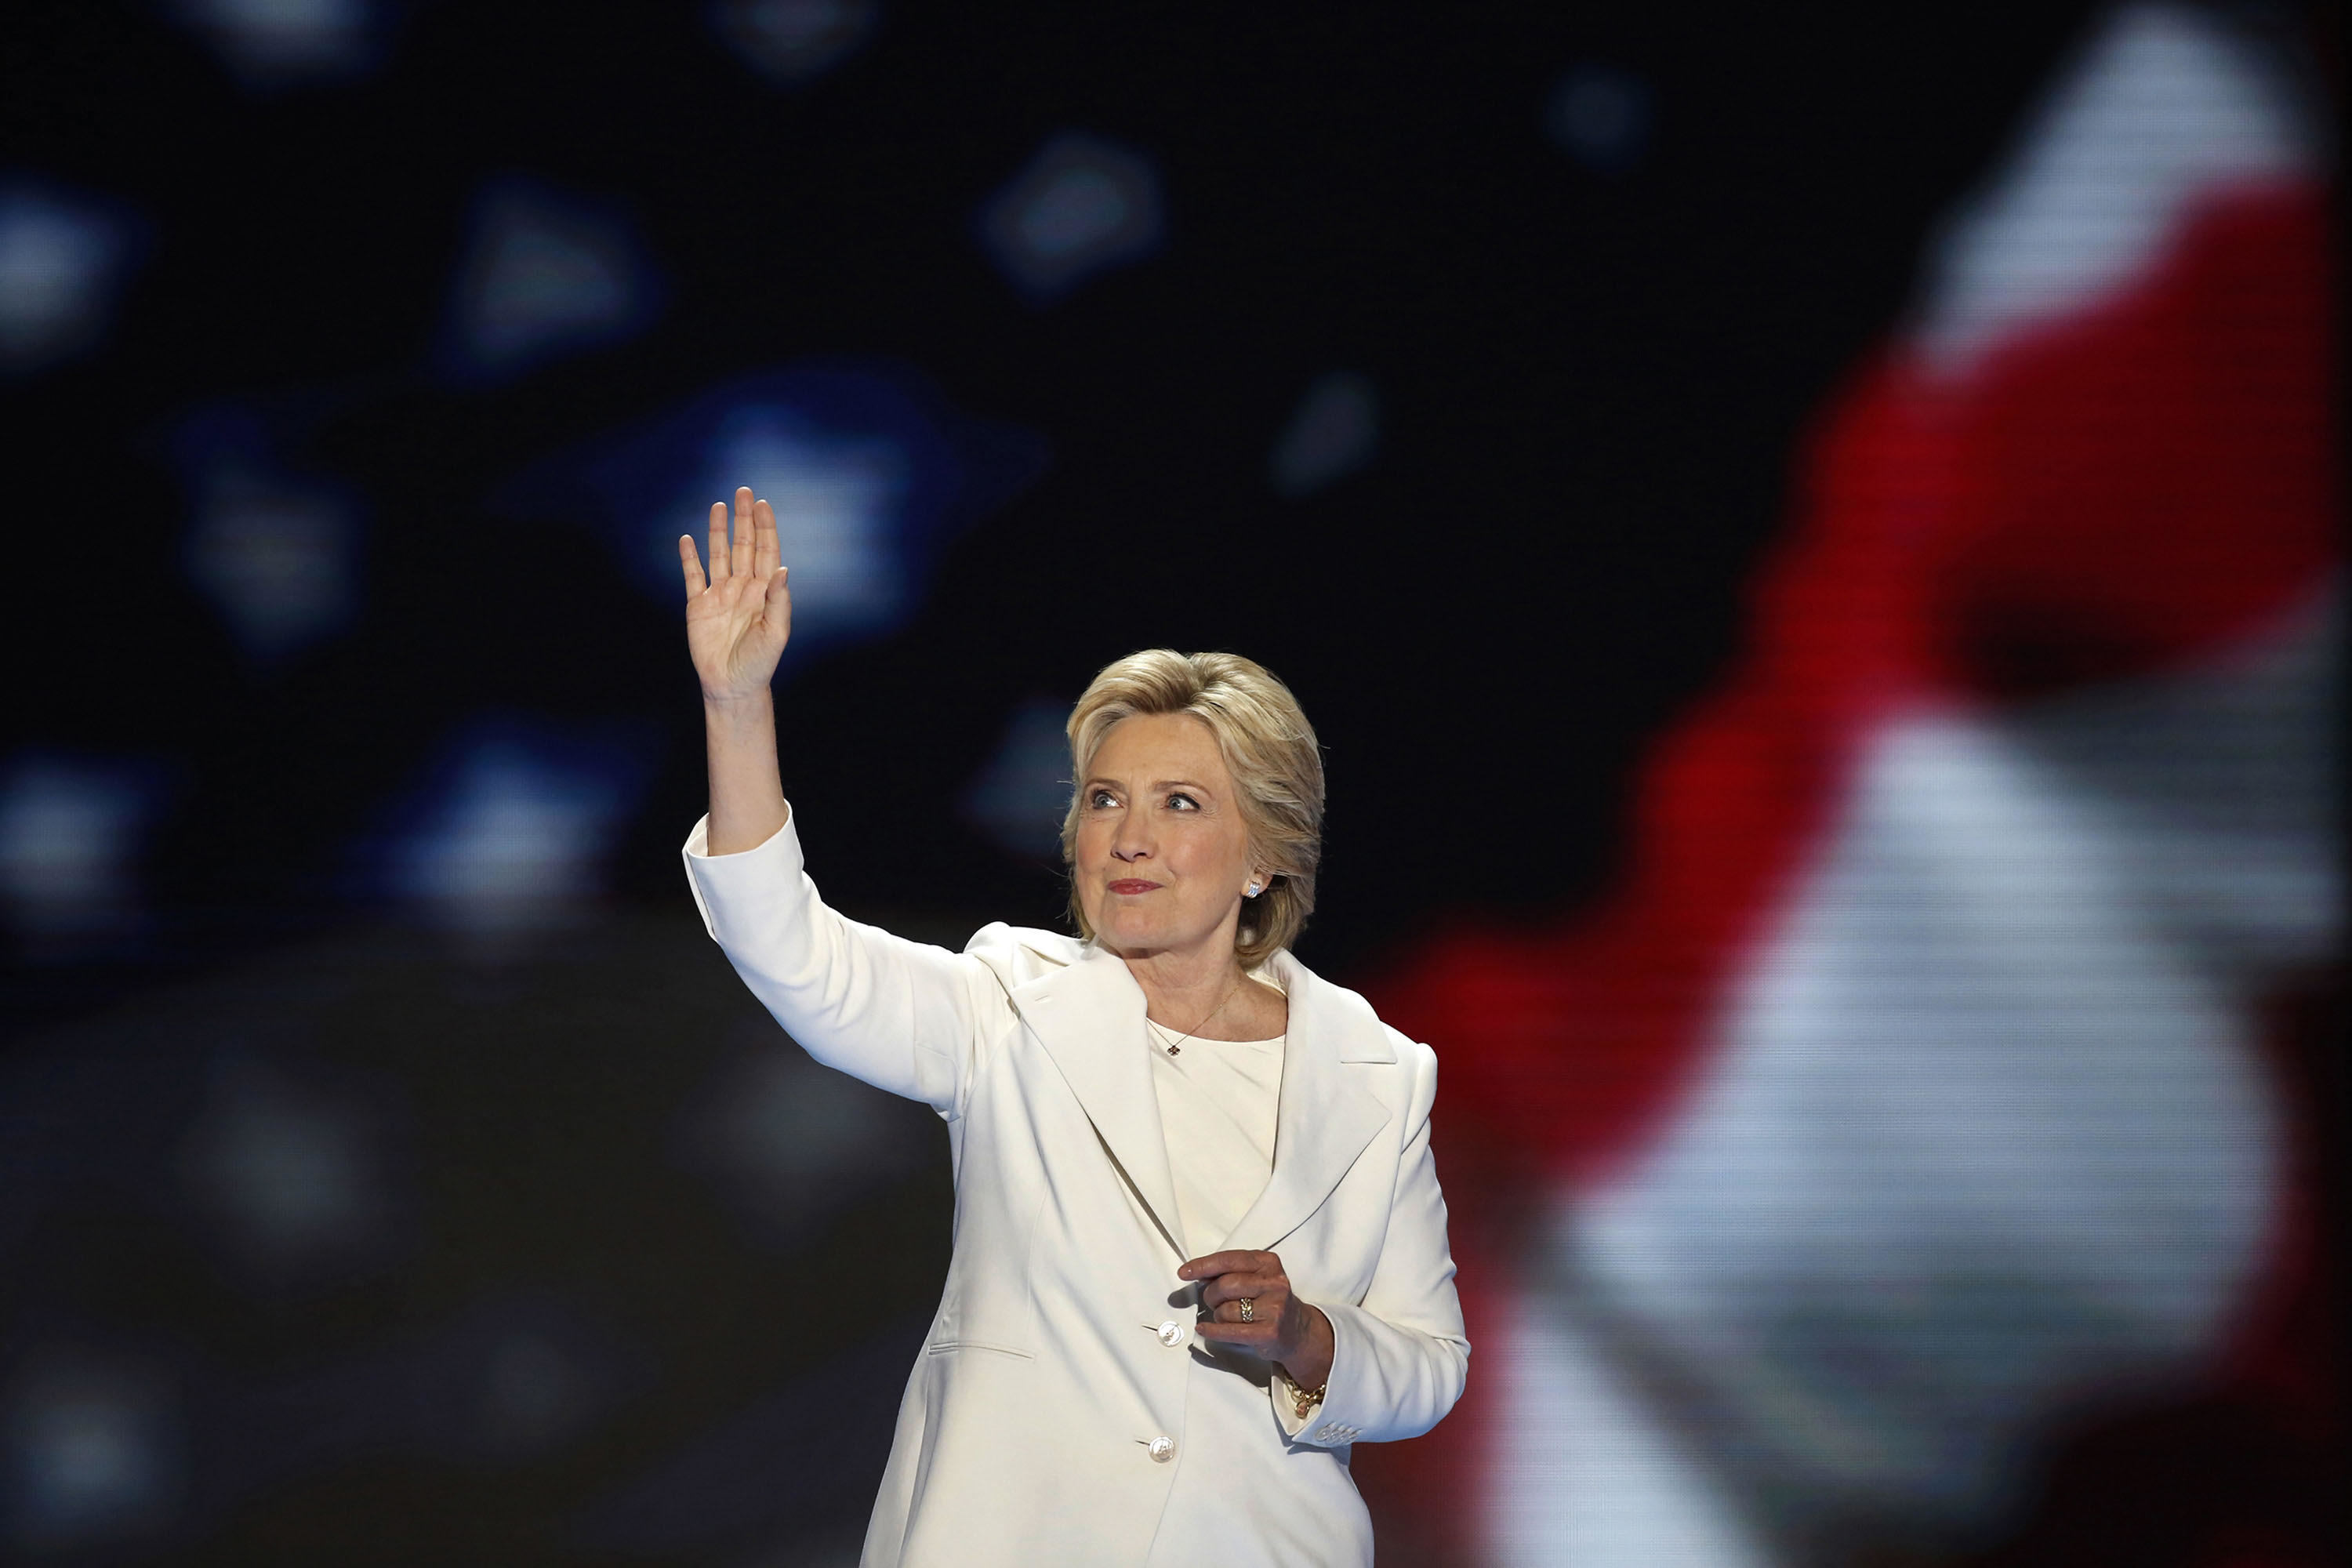 Hillary Clinton at the Democratic National Convention in Philadelphia on July 28, 2016.